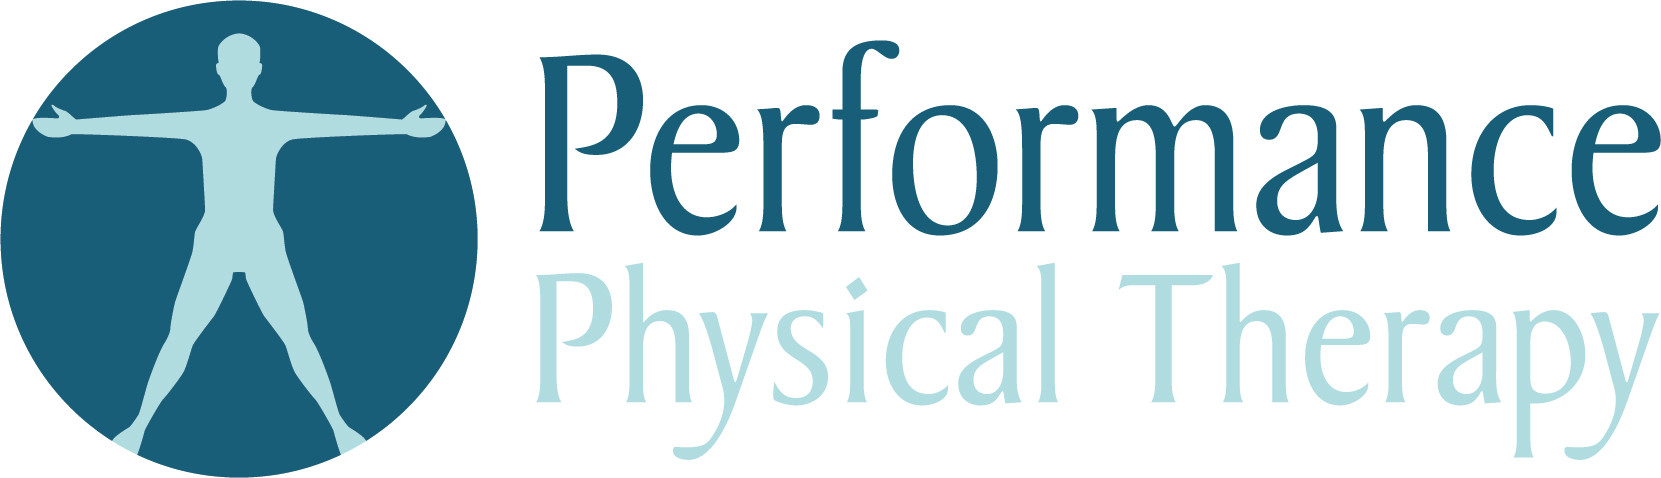 Physical Therapy Performance Physical Therapy Rhode Island Ma